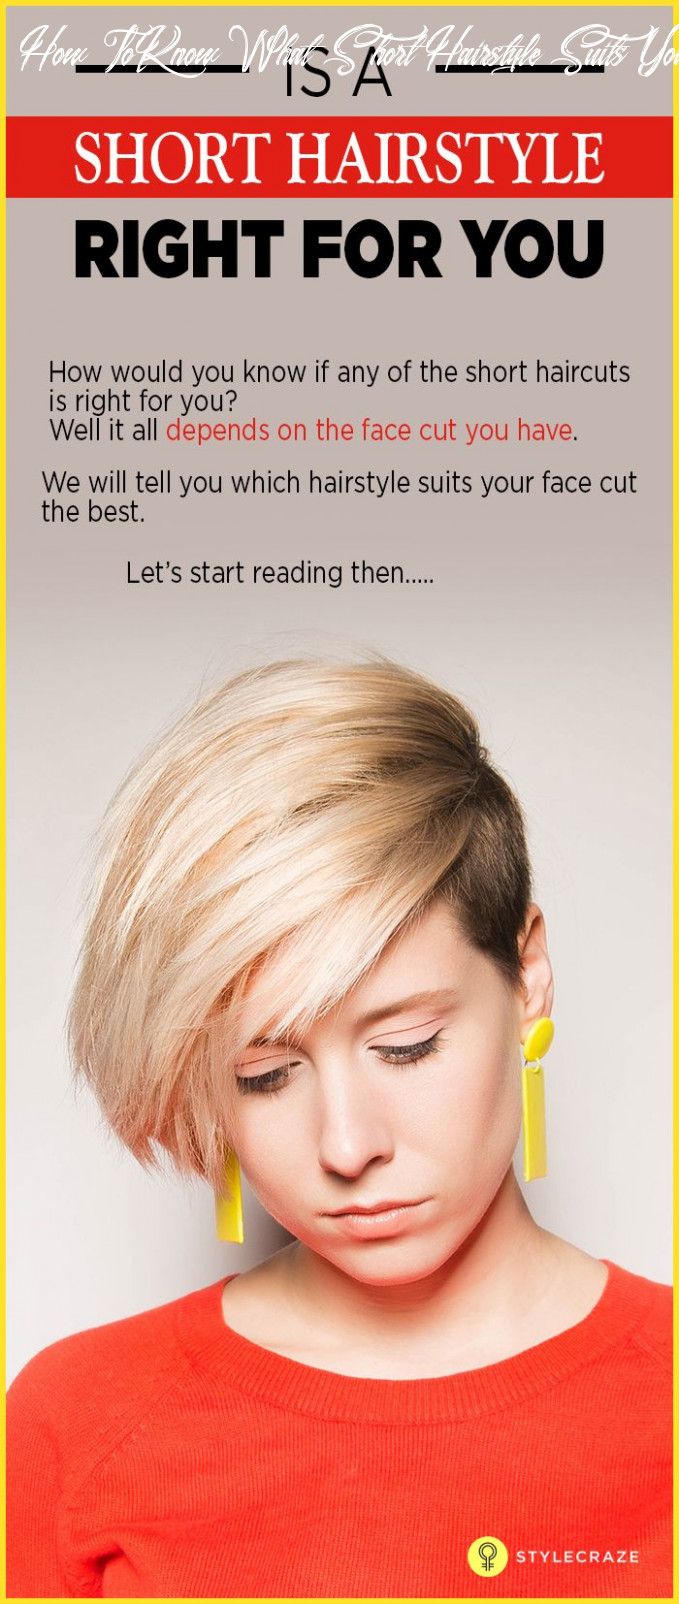 How to figure out if short hair will suit you | short hair styles